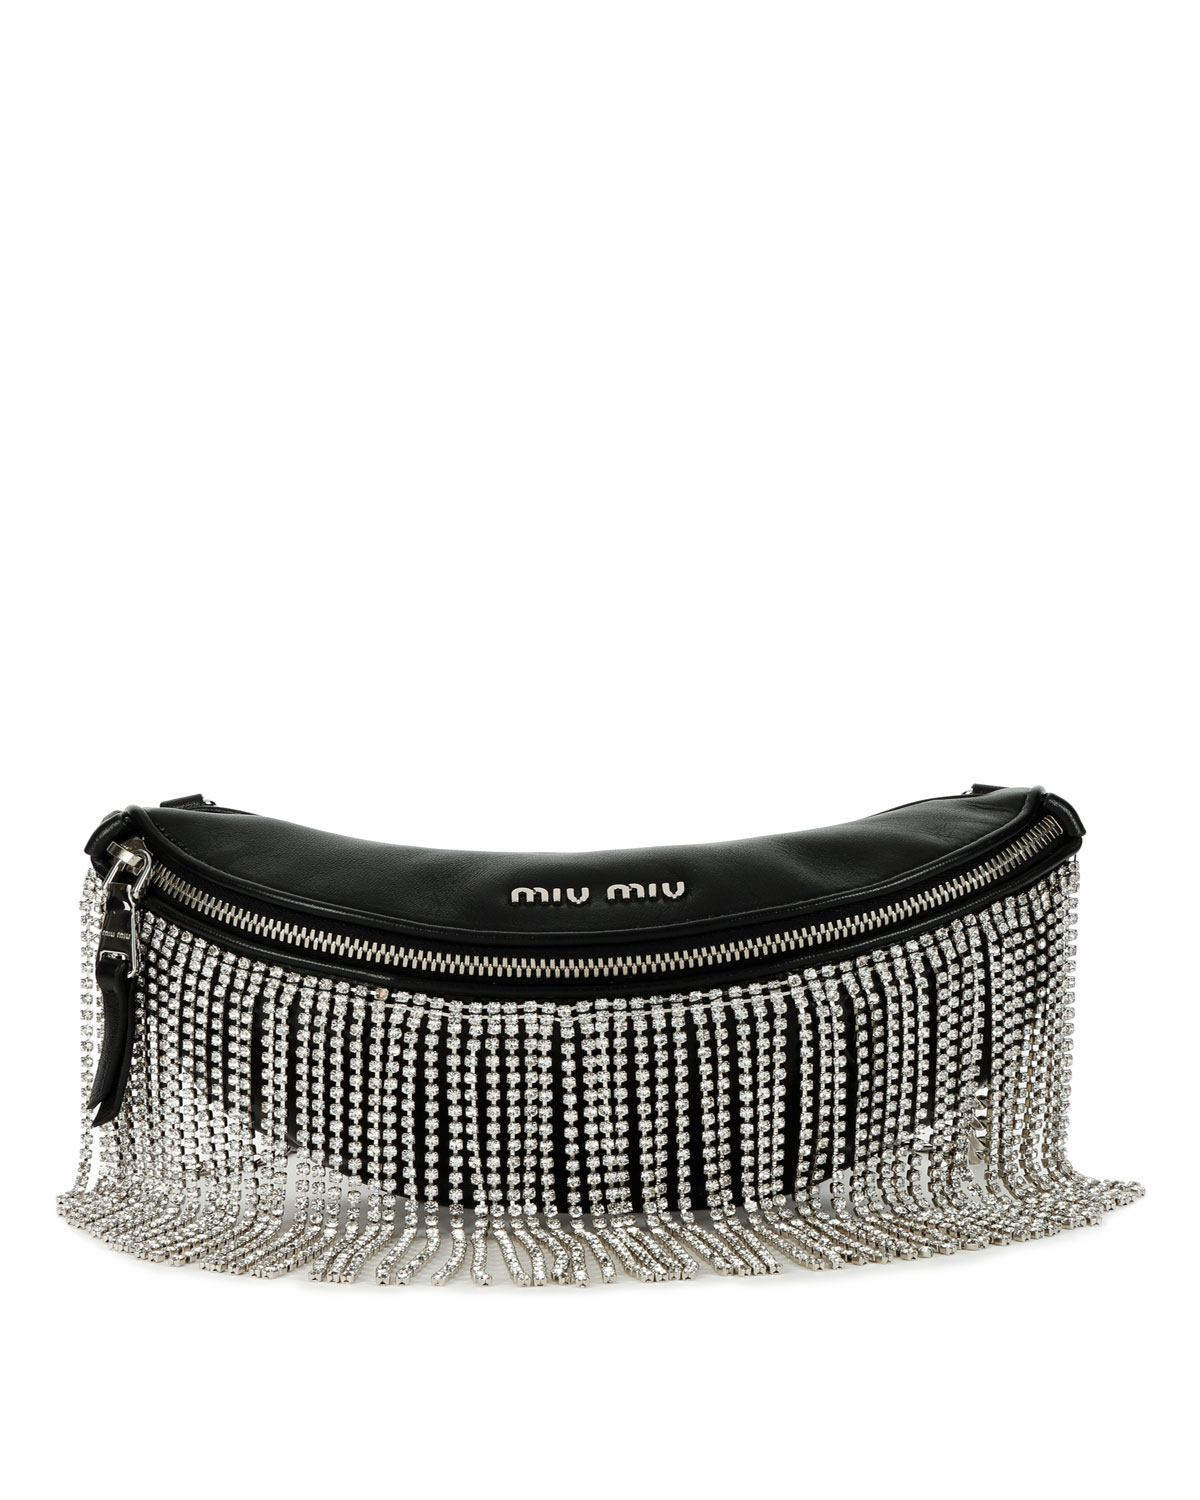 ca4845e6fefb Miu Miu Crystal Fringe Napa Leather Fanny Pack Crossbody Bag ...